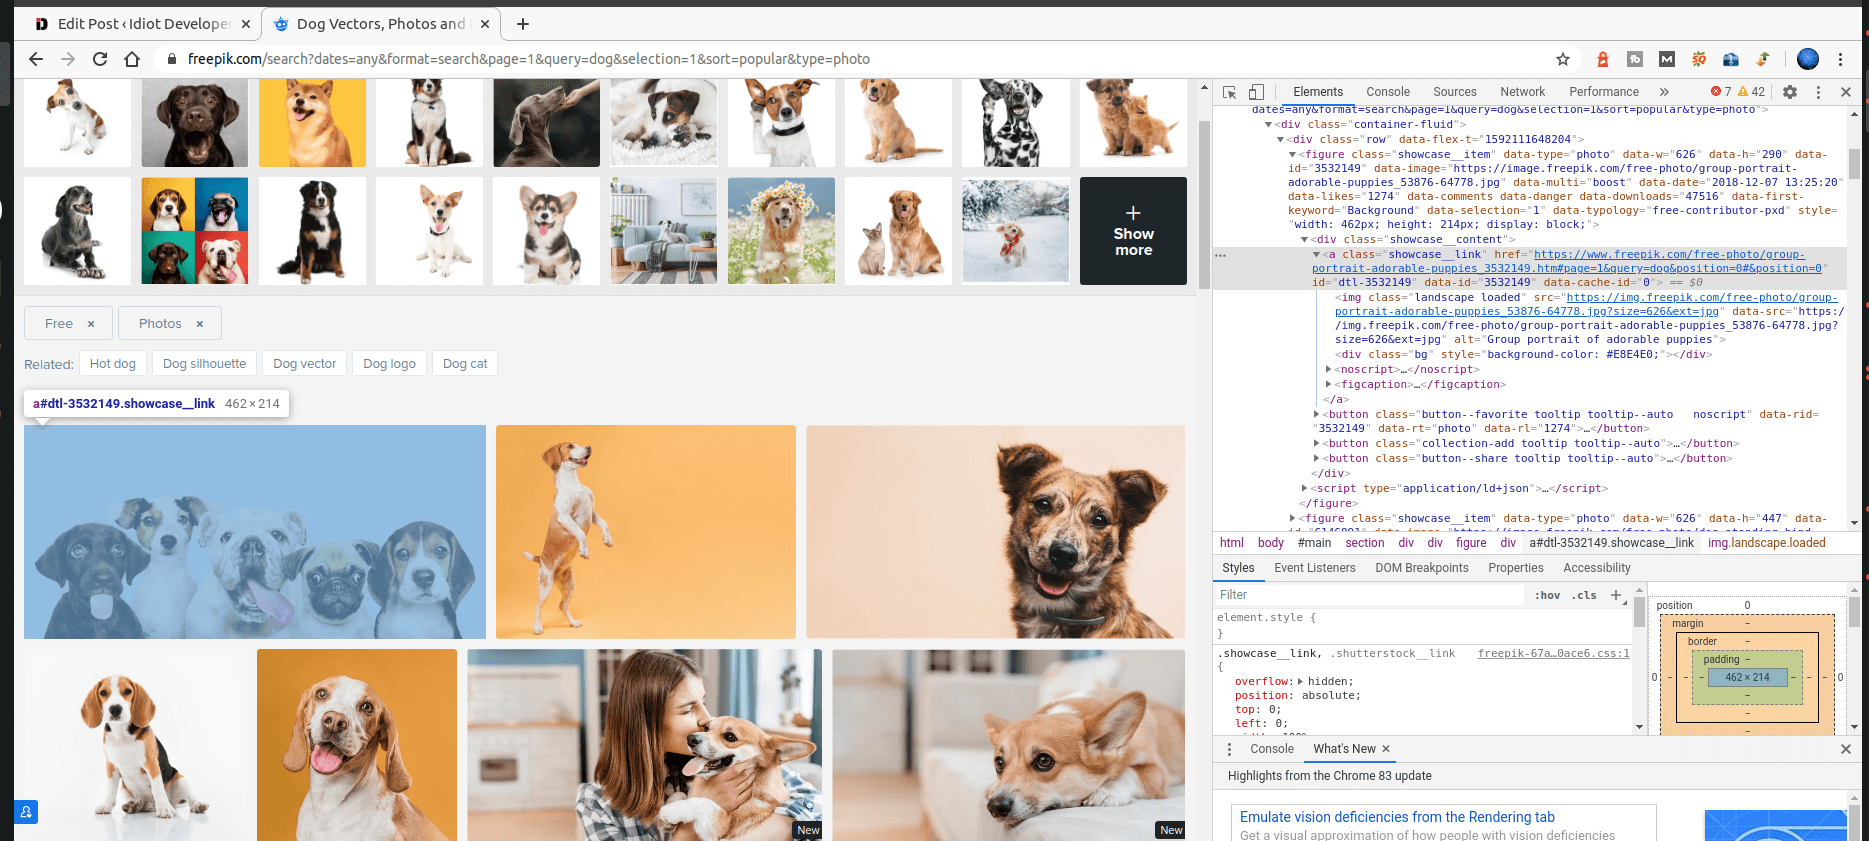 Inspecting element to find the proper tag and class name to extract the images